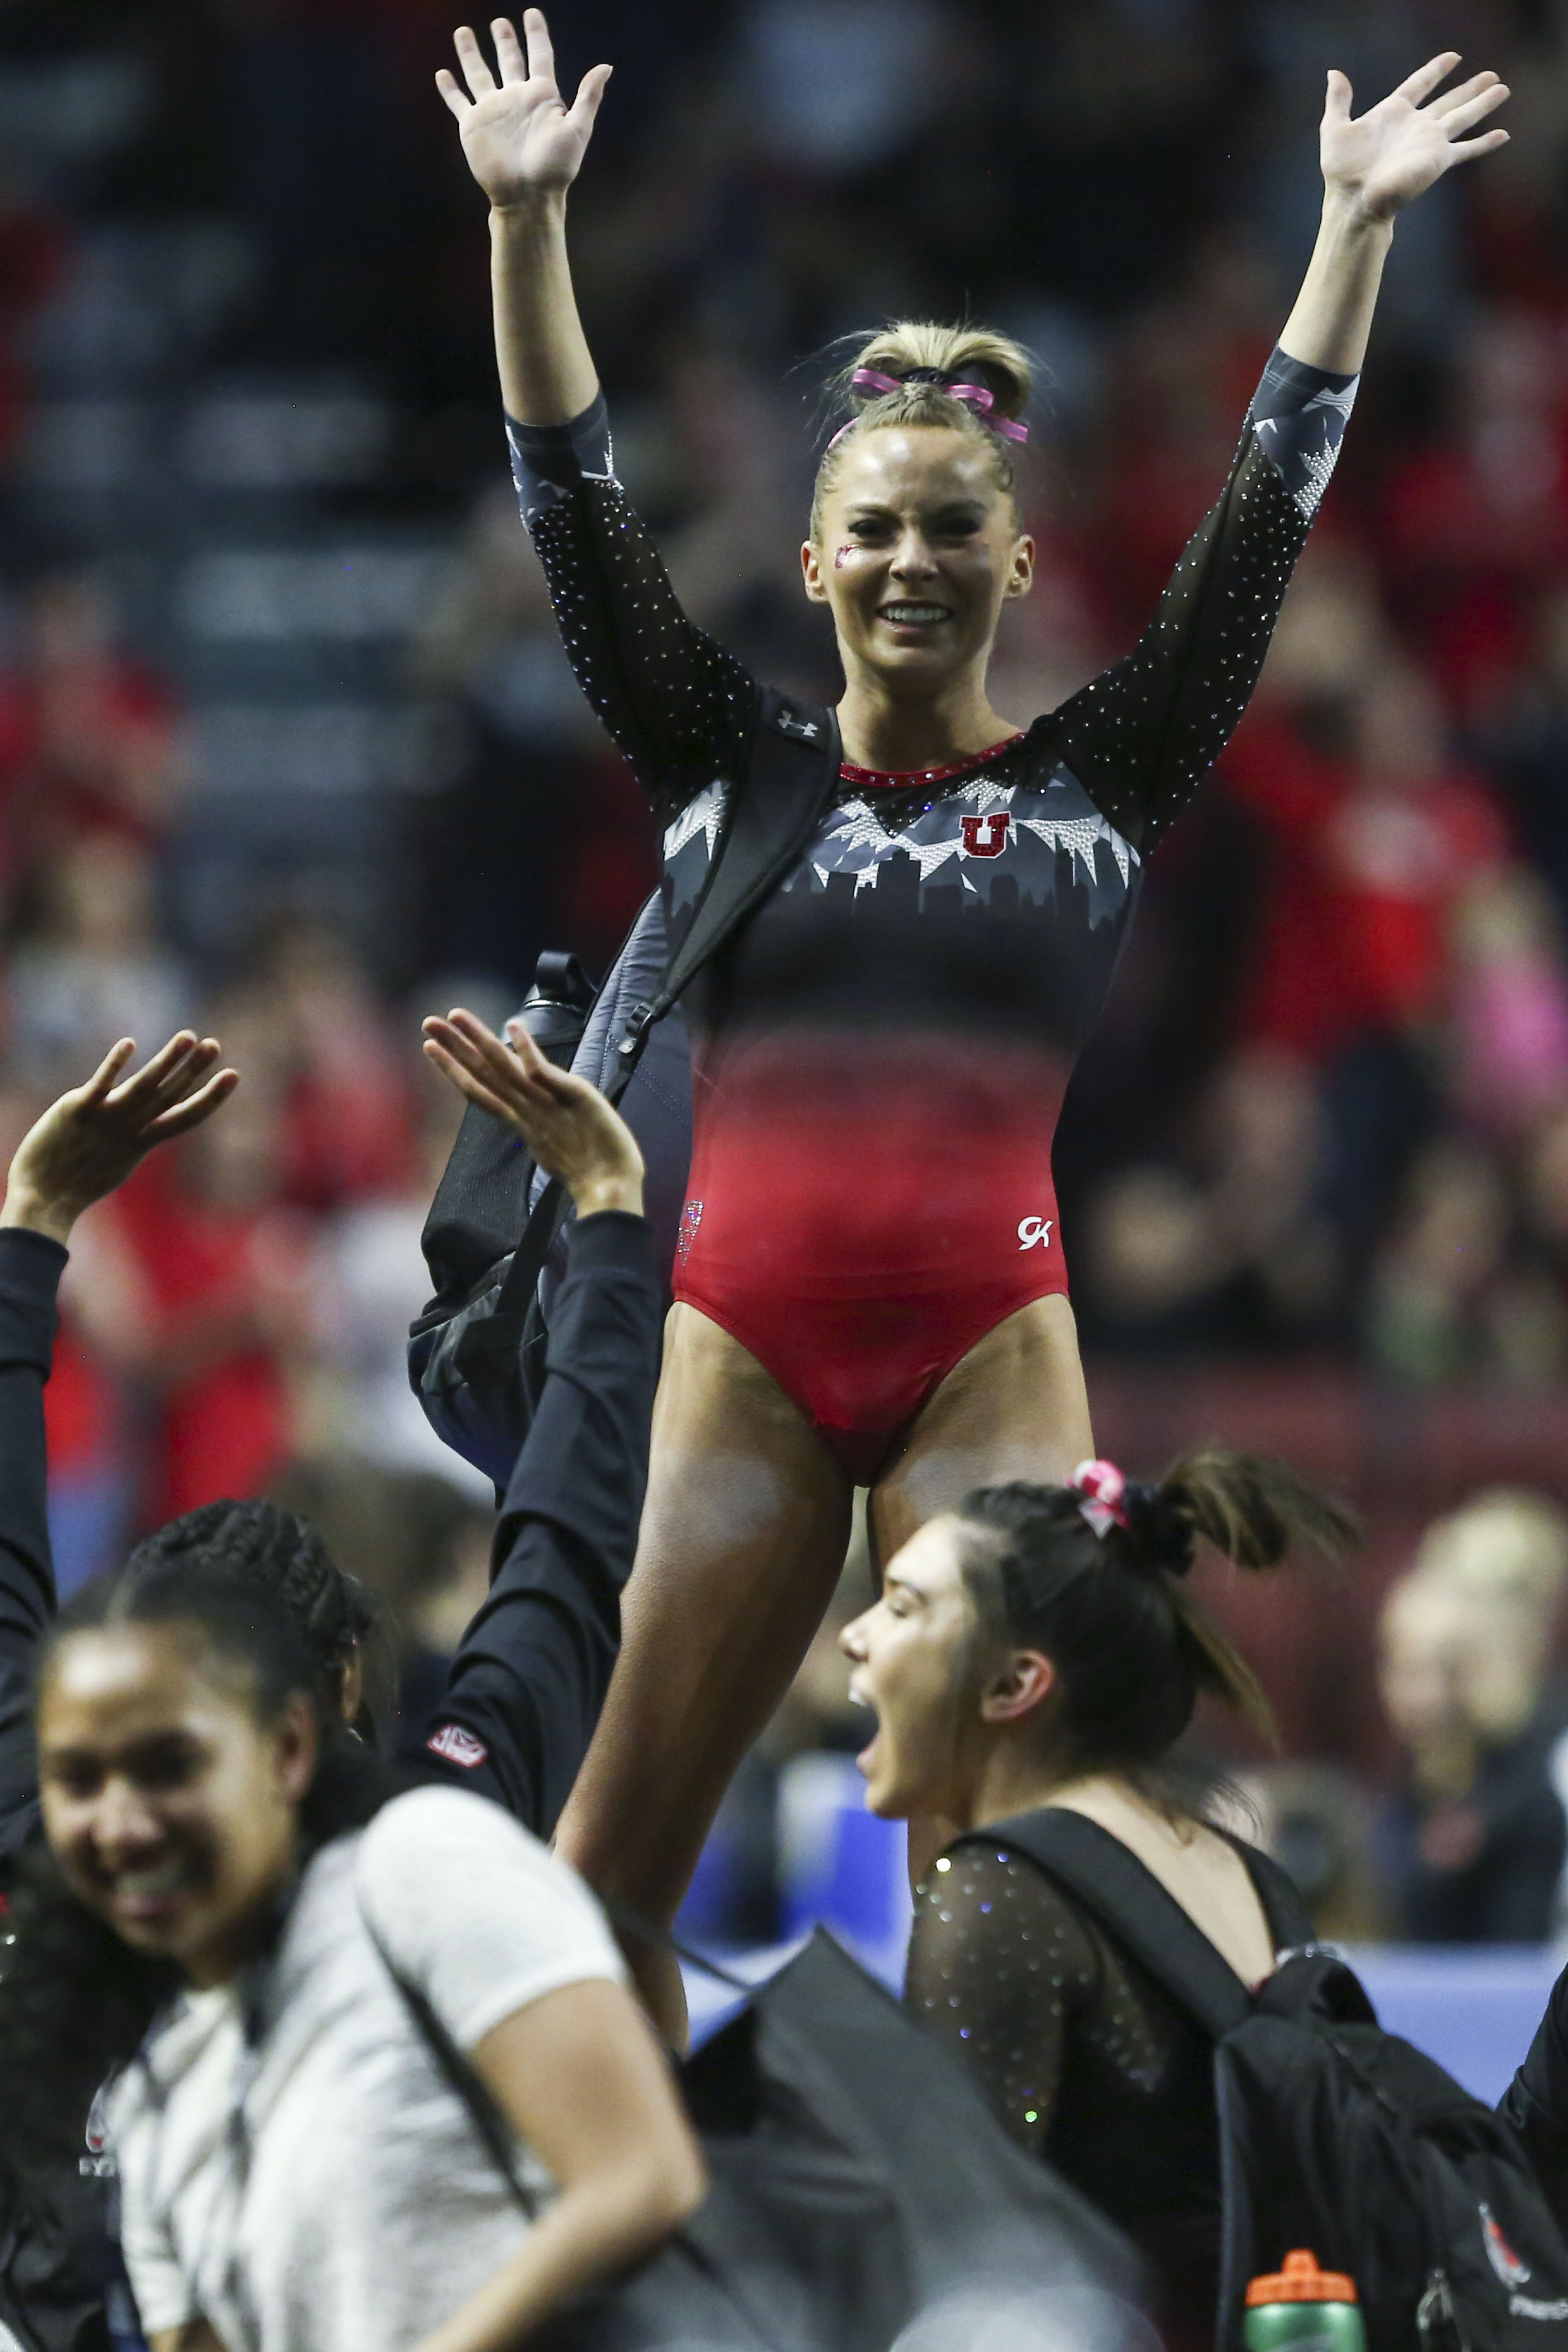 University of Utah junior MyKayla Skinner finishes her floor performance during the Pac-12 gymnastics championship at the Maverick Center in West Valley City on Saturday, March 23, 2019. Skinner was awarded a perfect score of 10 by the judges.